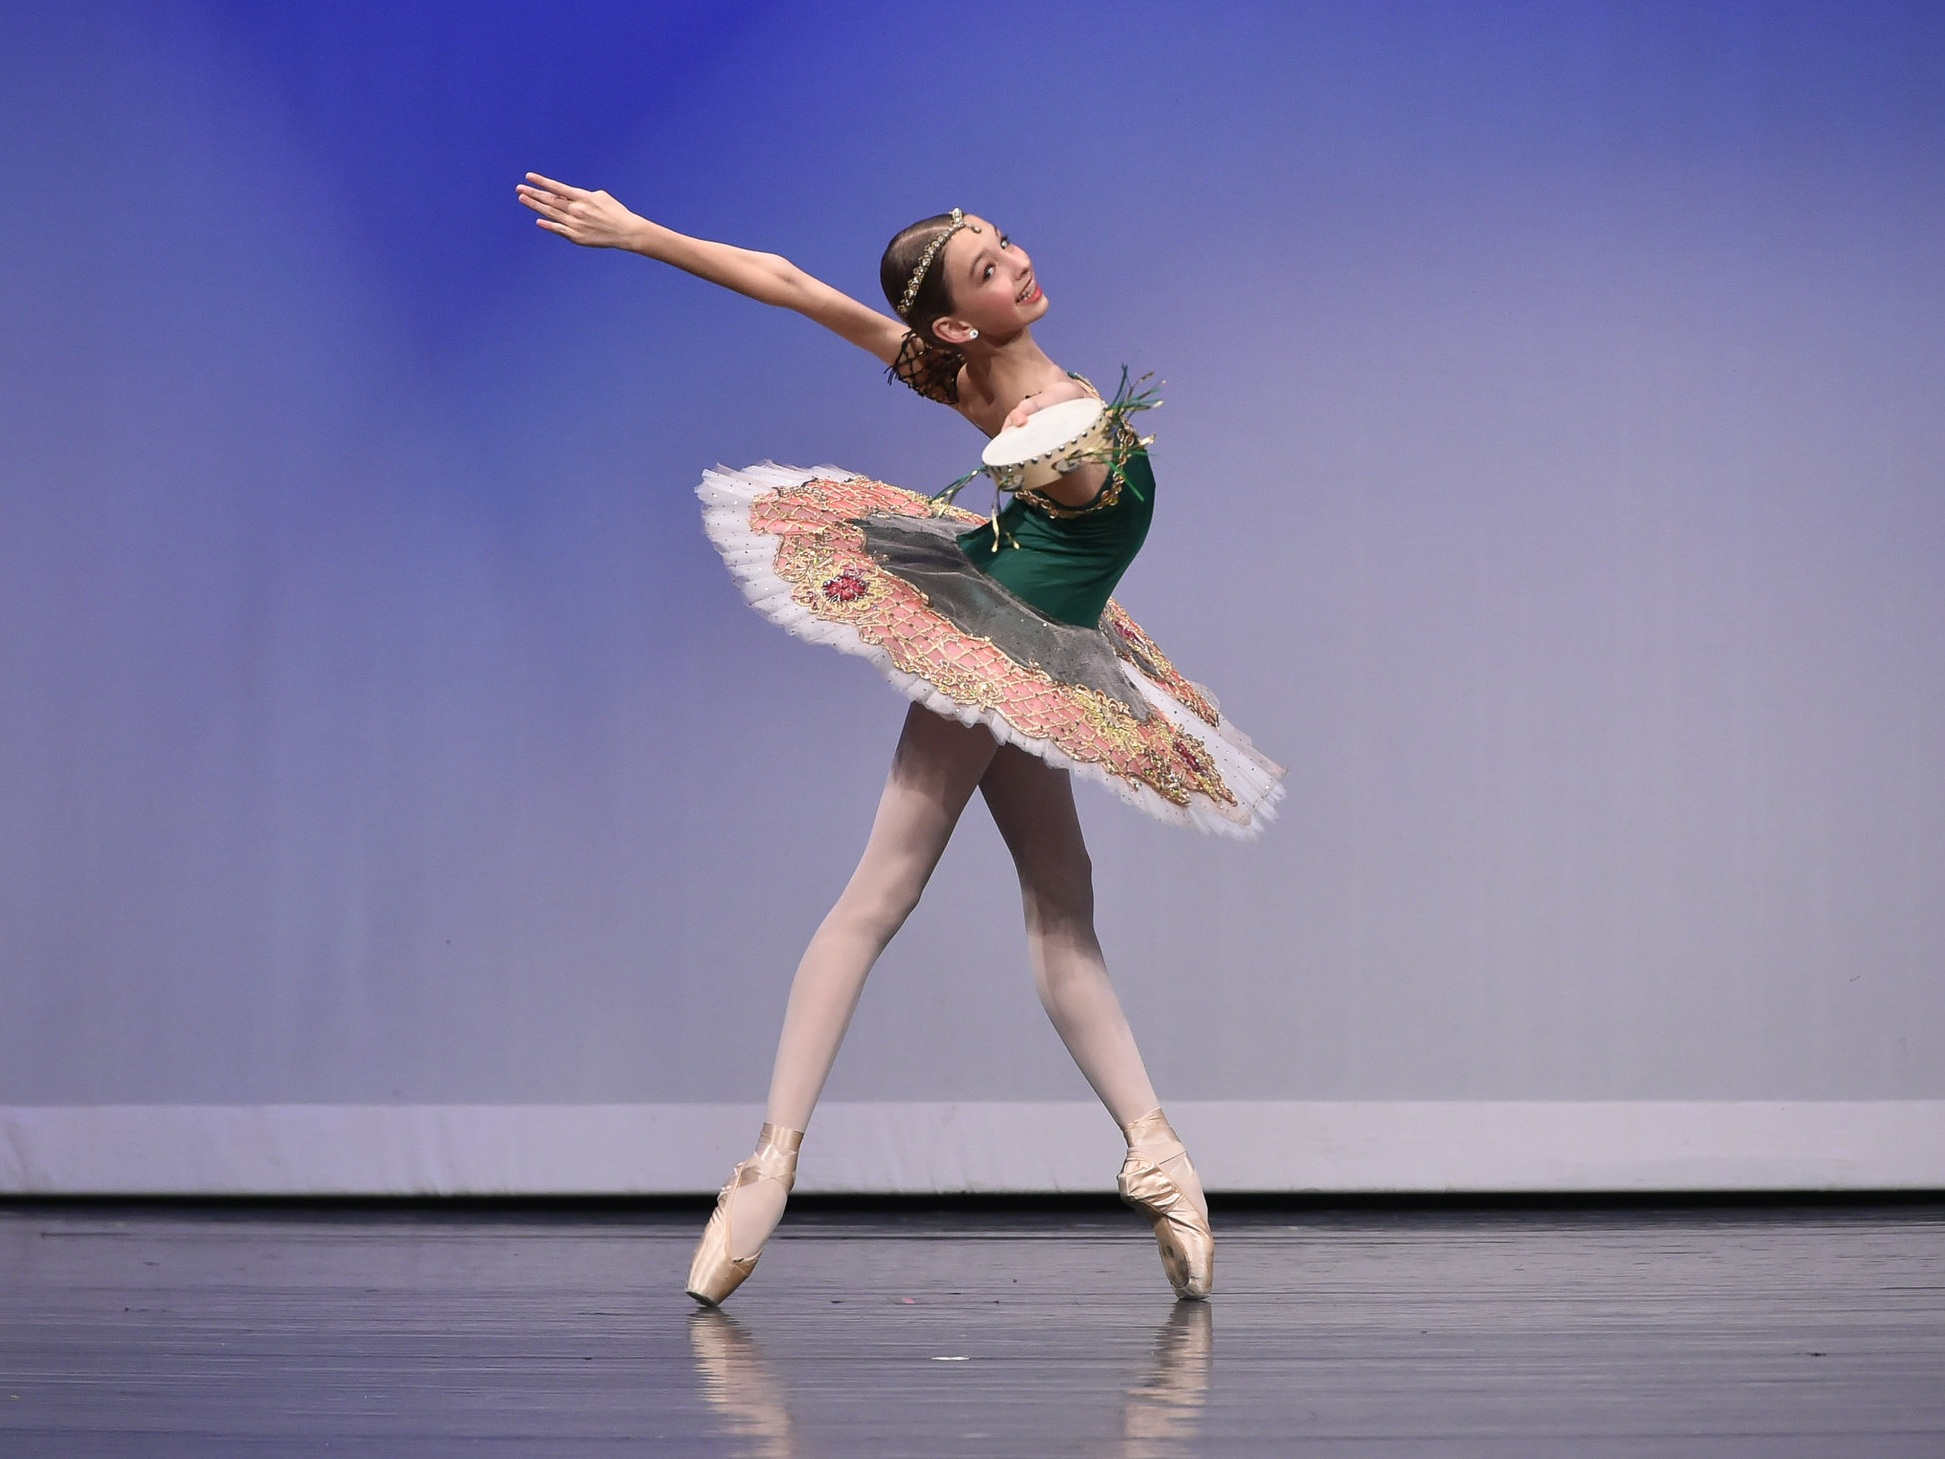 Kate Thomas has been recognized numerous times at YAGP with 1st, 2nd and 3rd places in the classical and contemporary categories. Kate is also the first dancer from San Antonio to pass to the final rounds of the New York YAGP Finals held at the Lincoln Center in New York City.